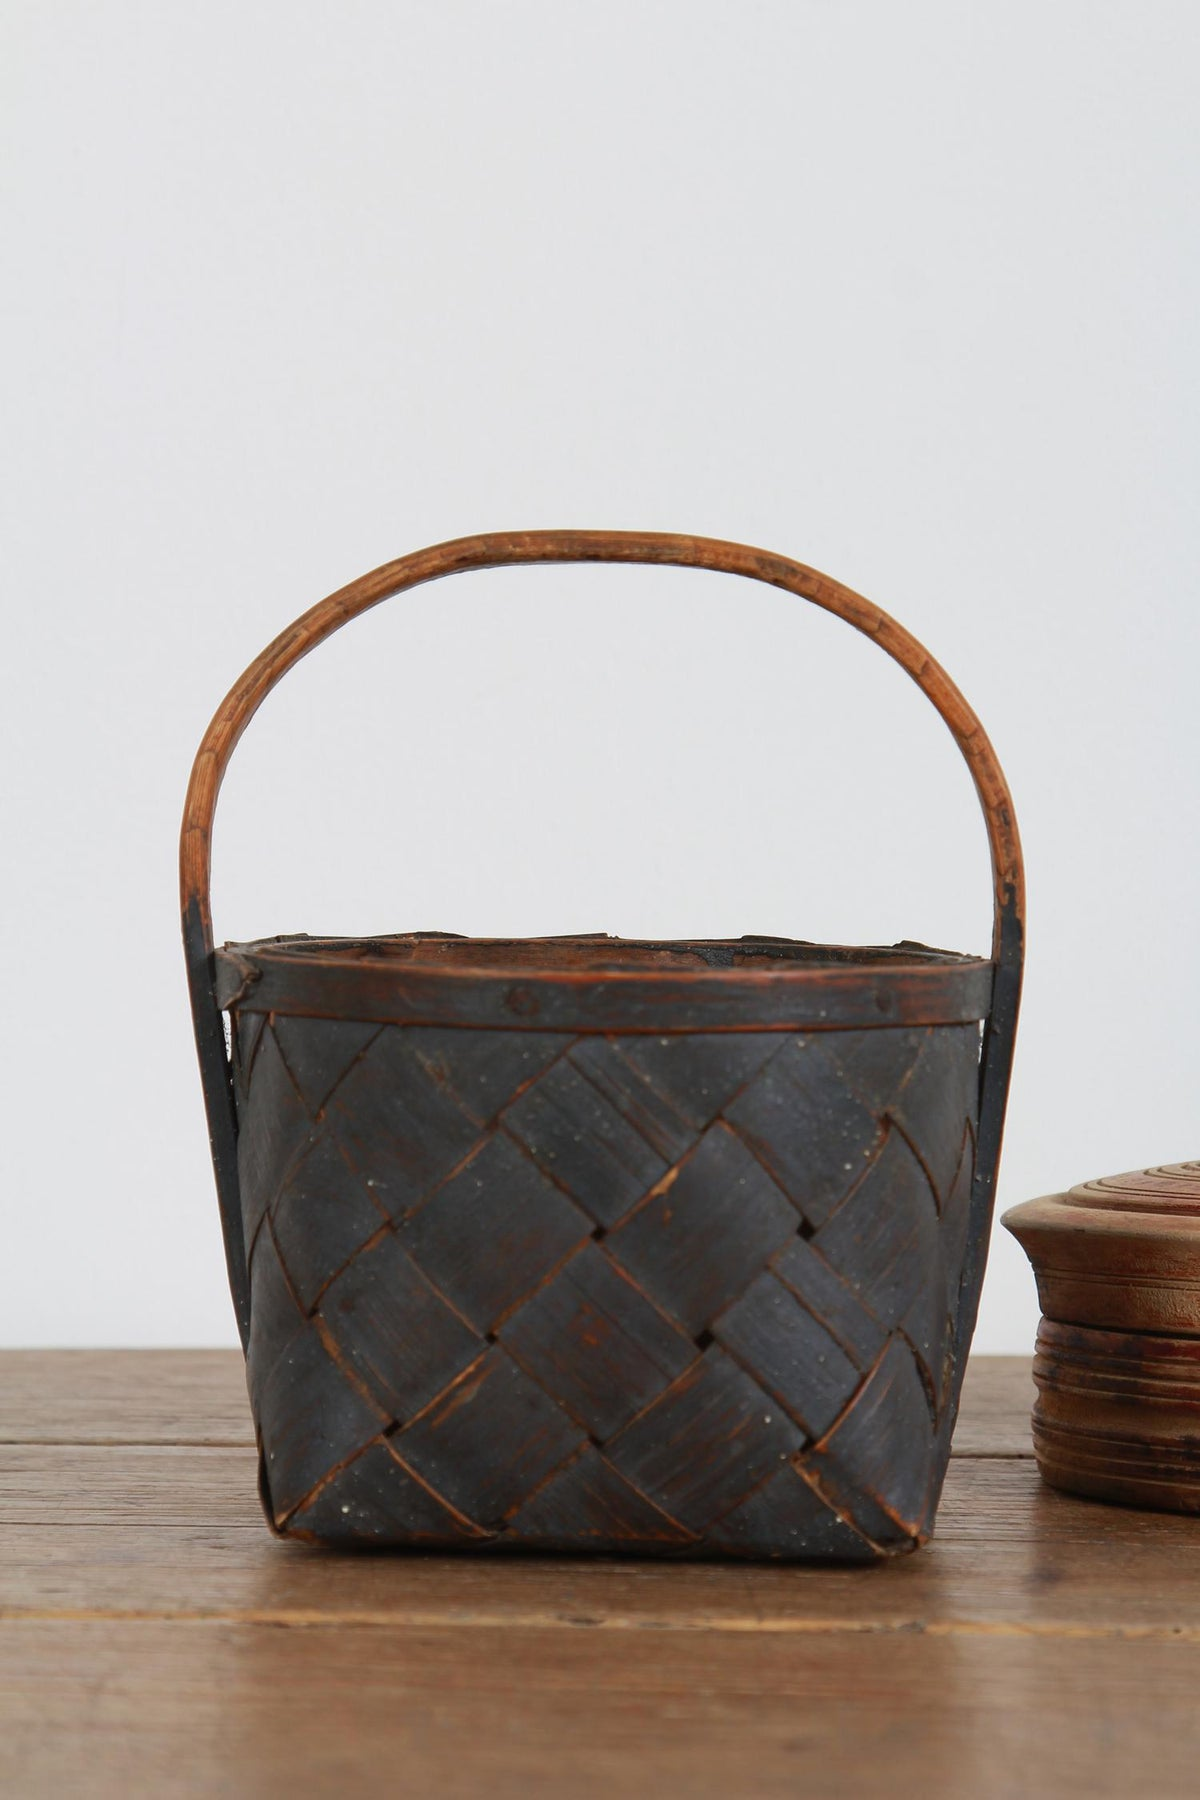 CHARMING SWEDISH 19THC SPLINT WOVEN FOLK ART  BERRY BASKET